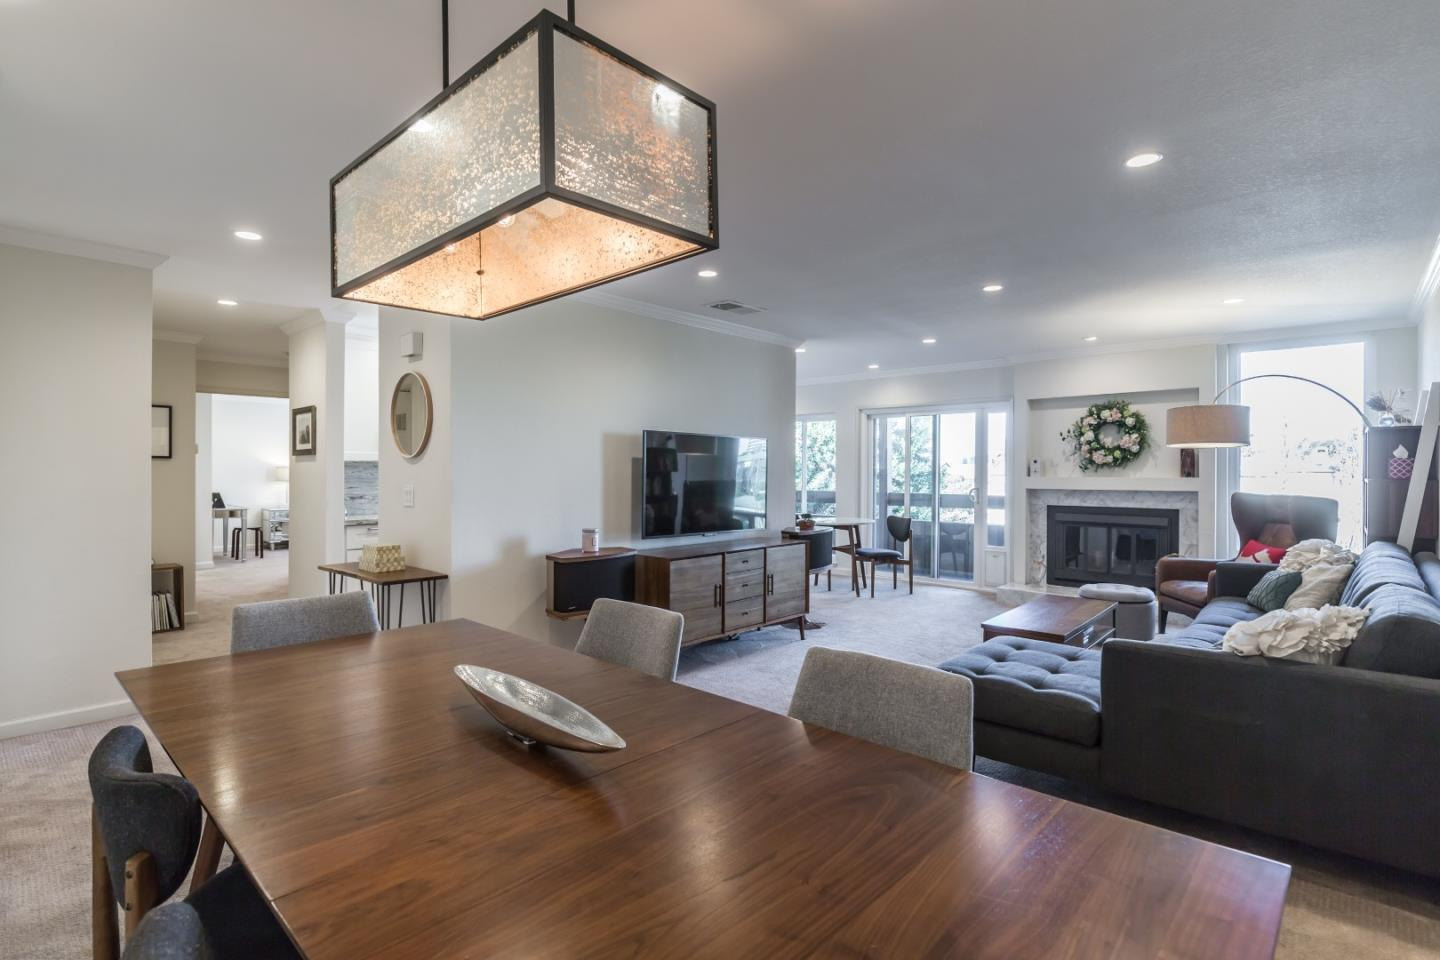 Condominium for Sale at 815 Sea Spray Lane 815 Sea Spray Lane Foster City, California 94404 United States